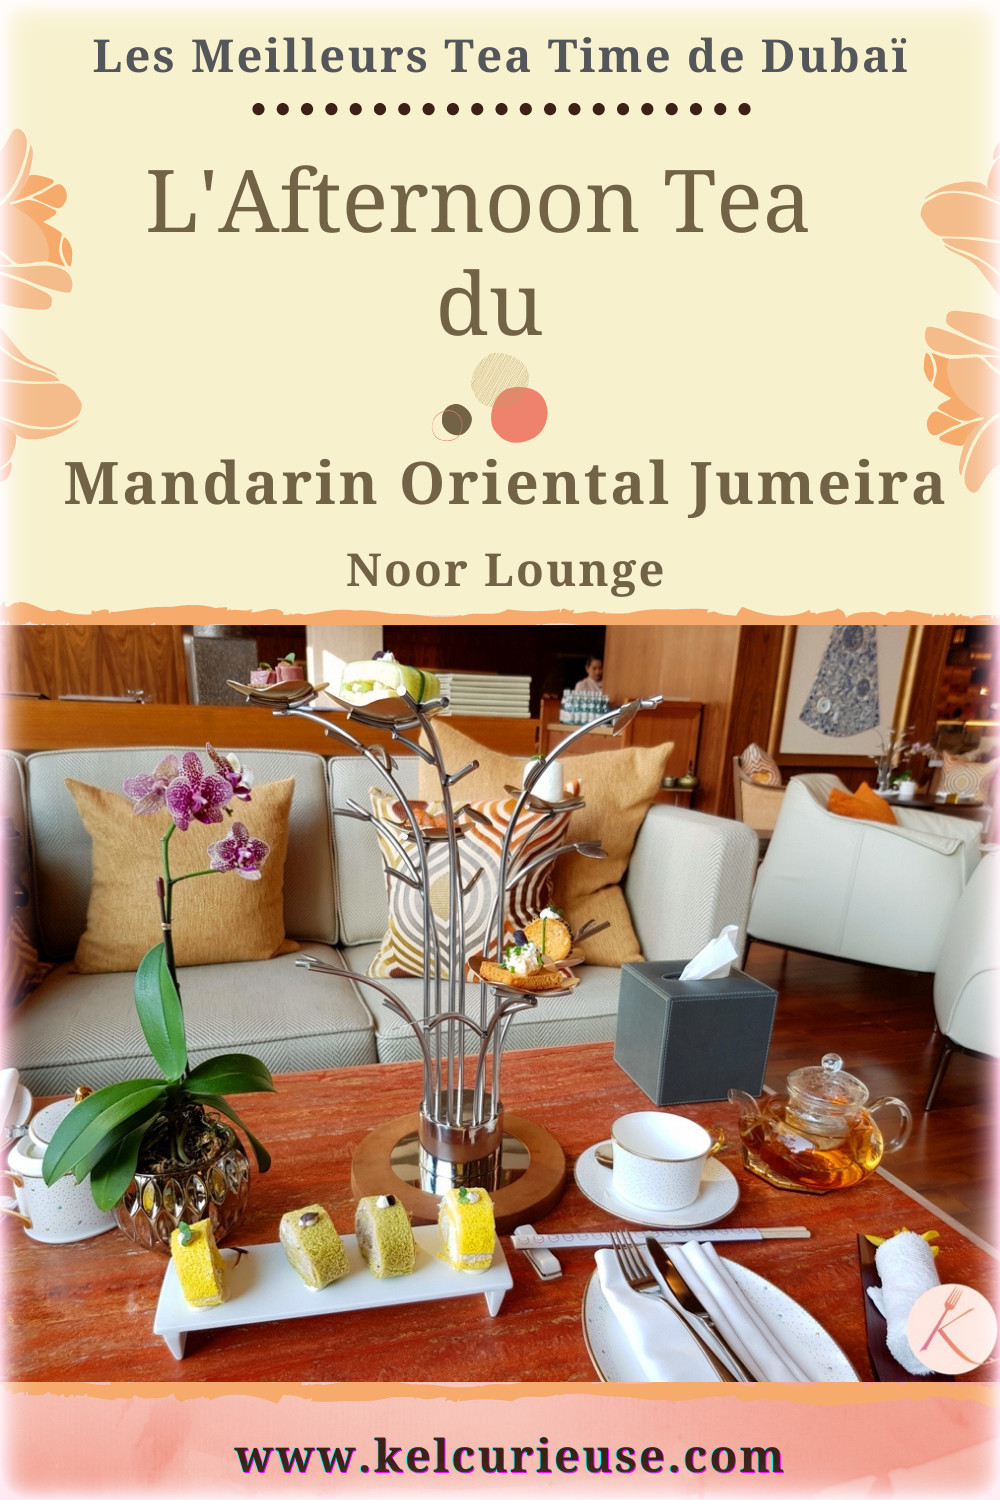 Noor Lounge Mandarin Oriental Jumeira afternoon tea